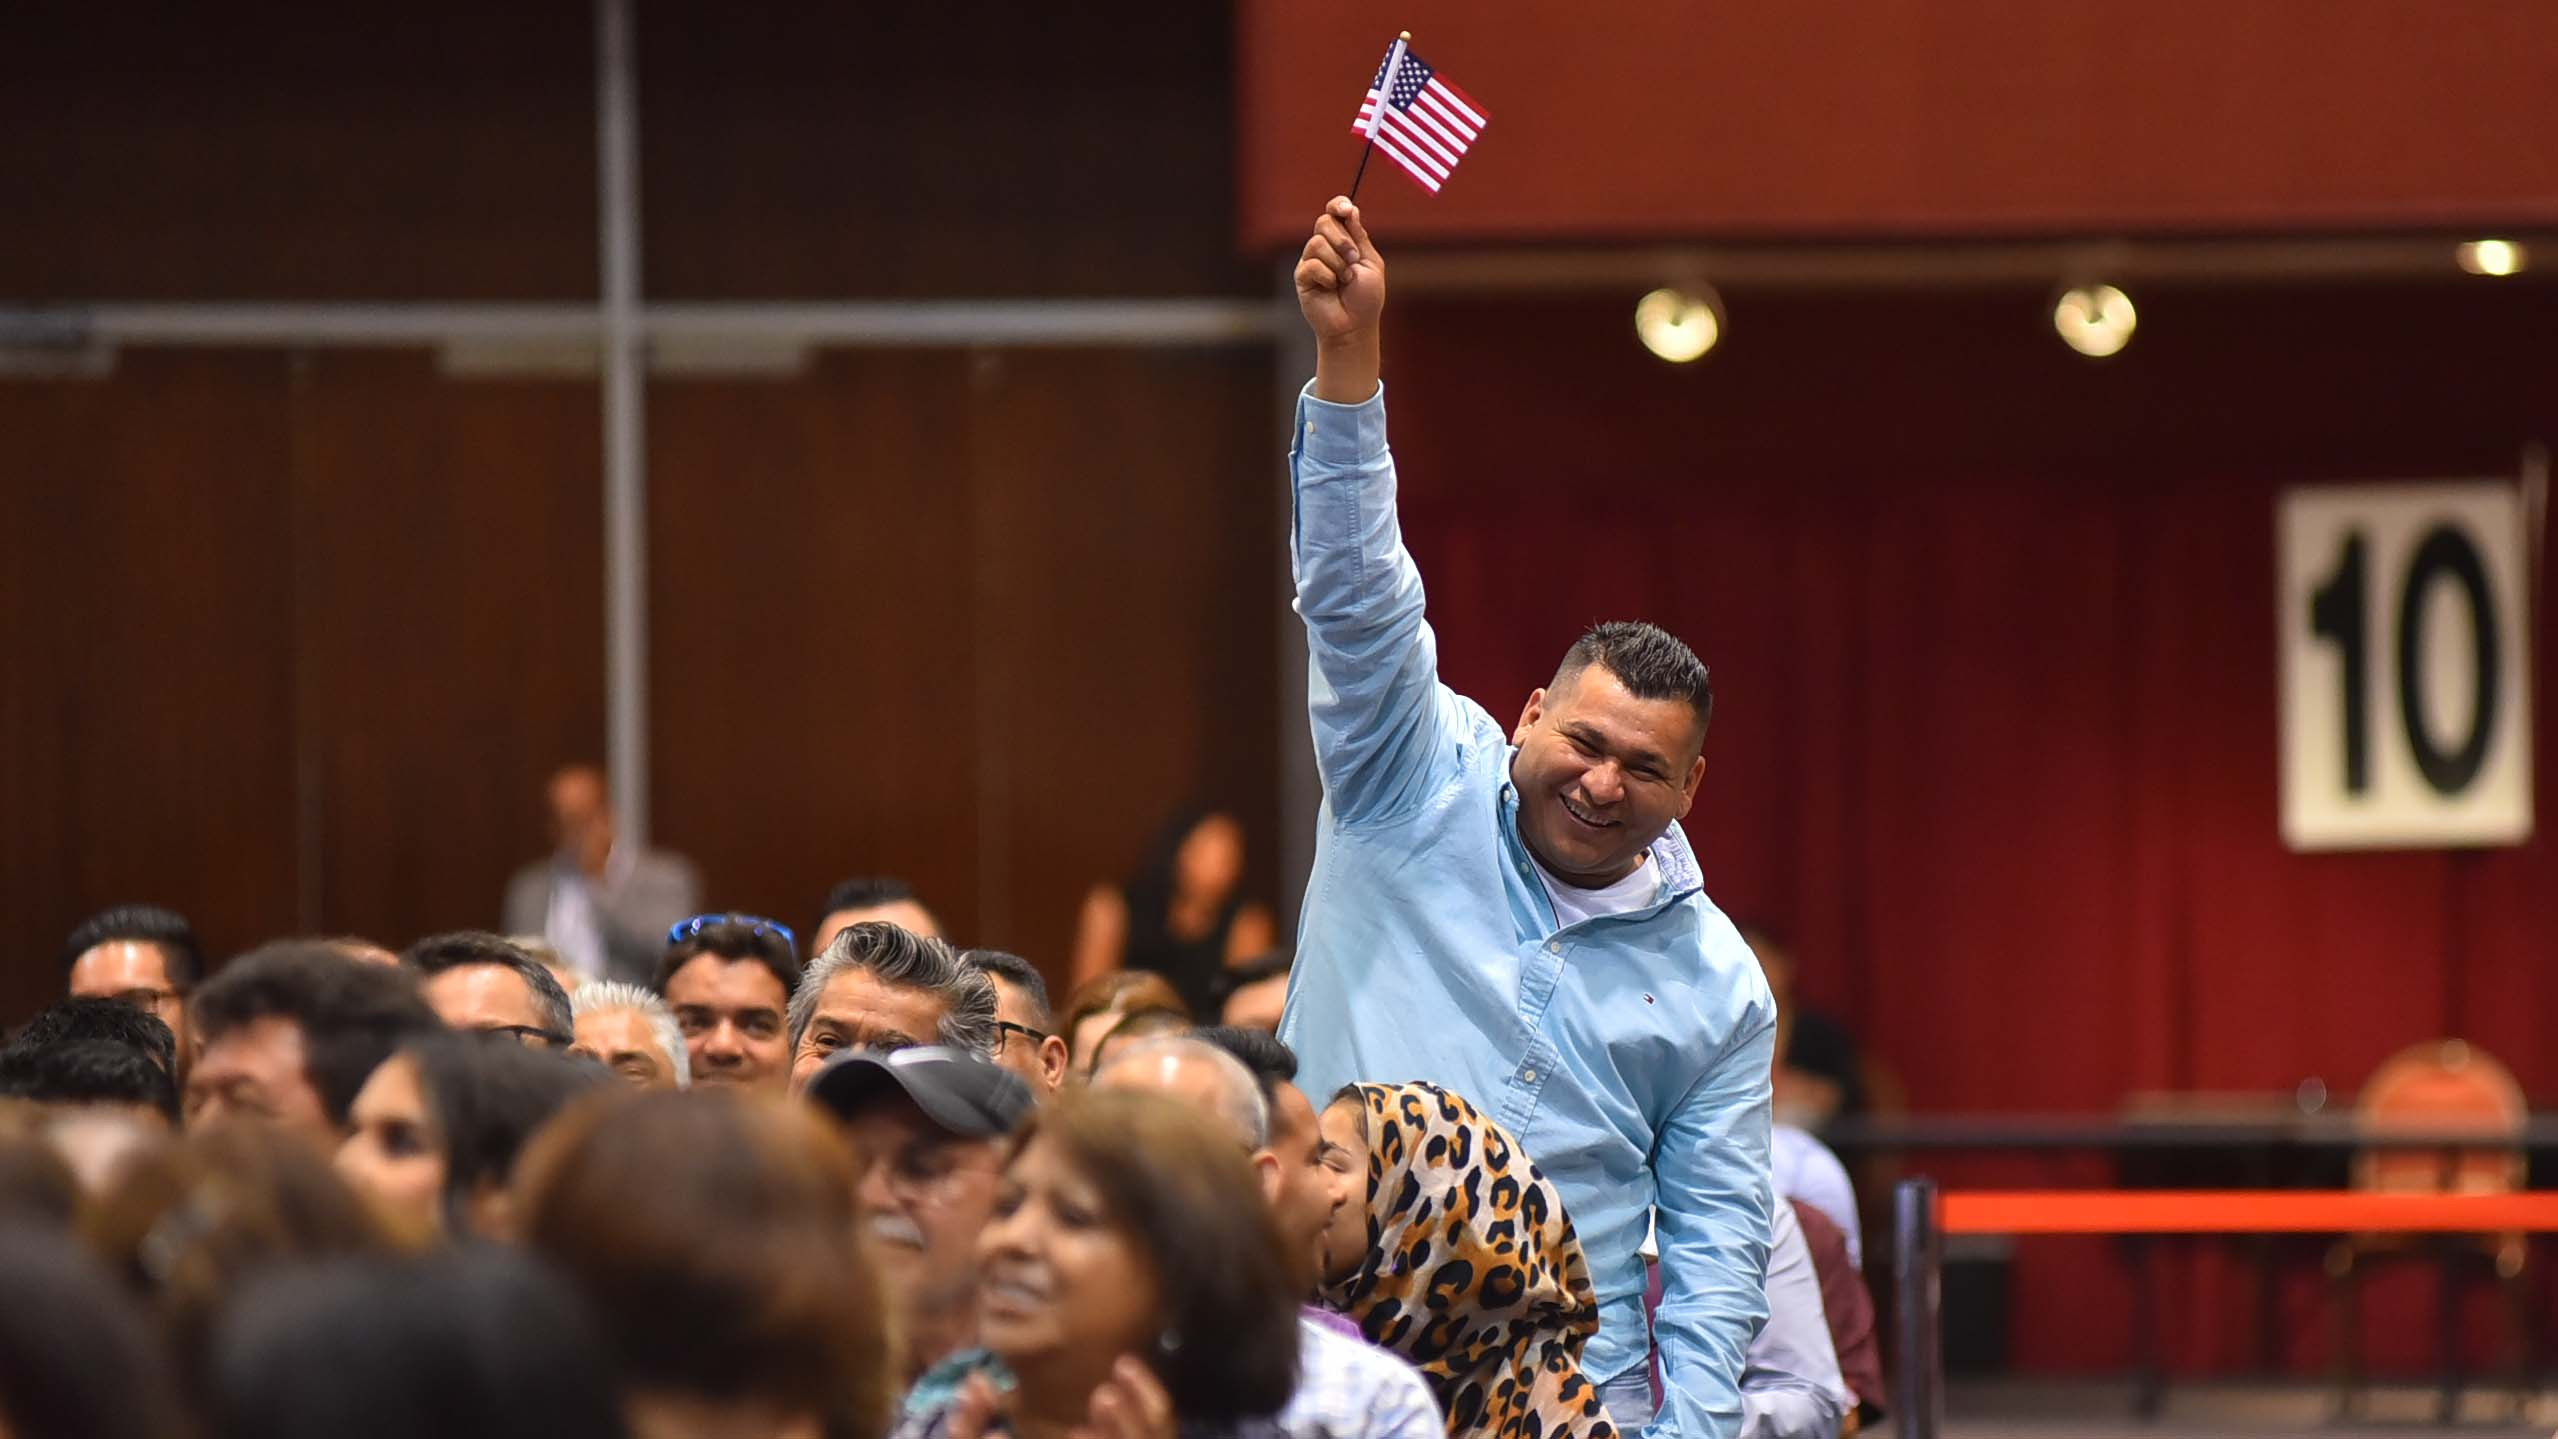 A man from El Salvador proudly represents his country as the judge calls out names of countries at the oath ceremony.